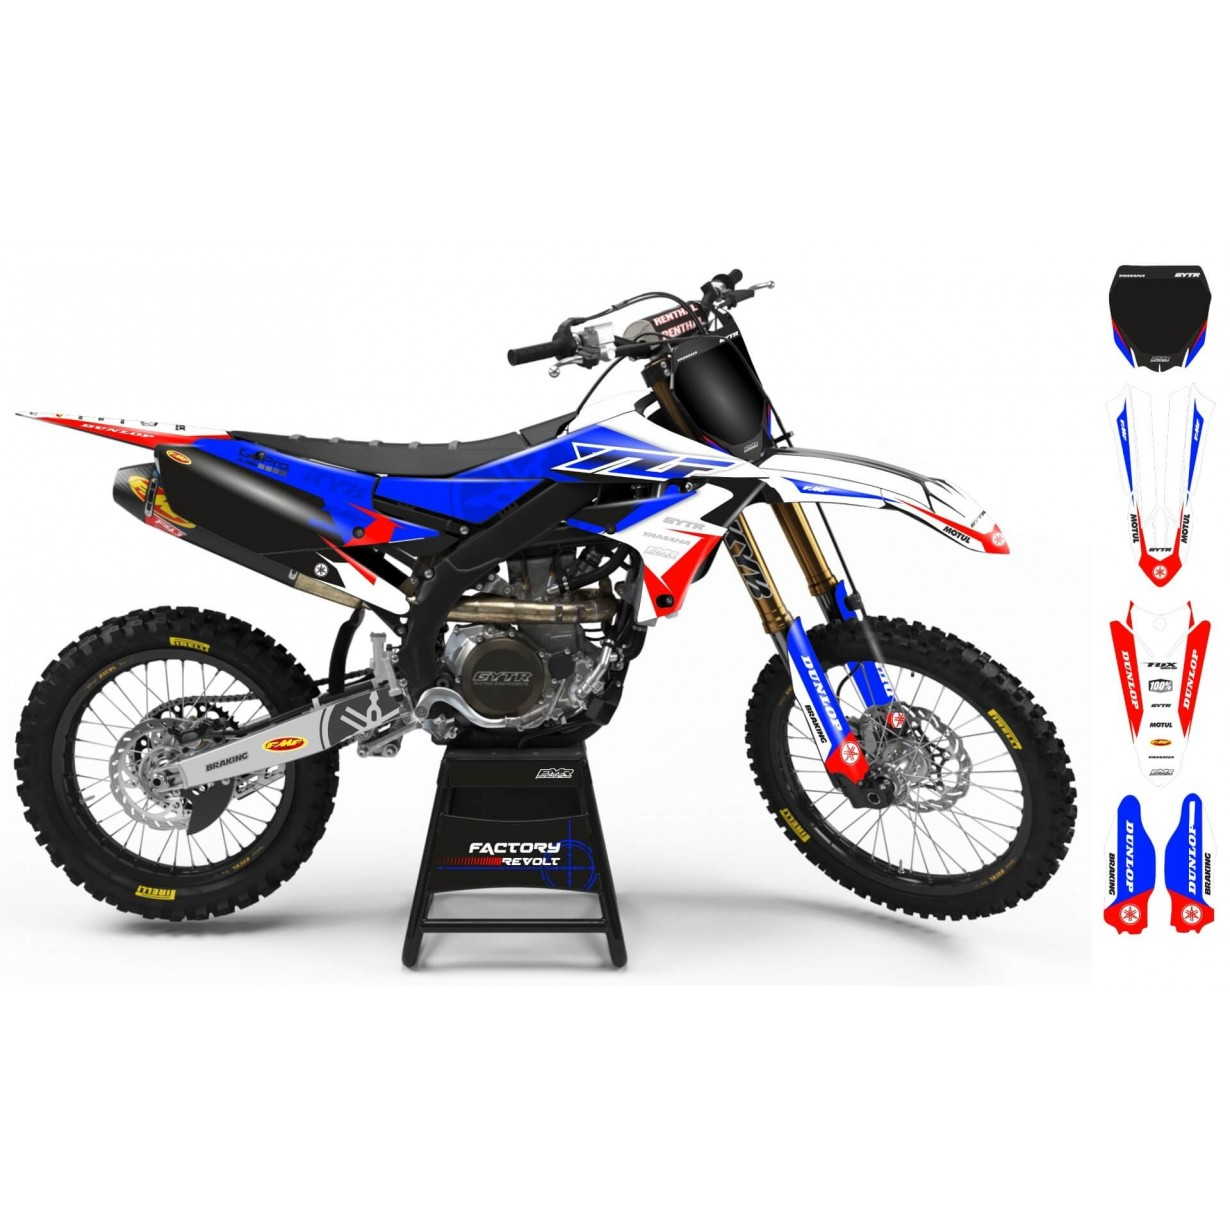 Kit déco Perso YAMAHA Factory Revolt A26E4 blue/white/red